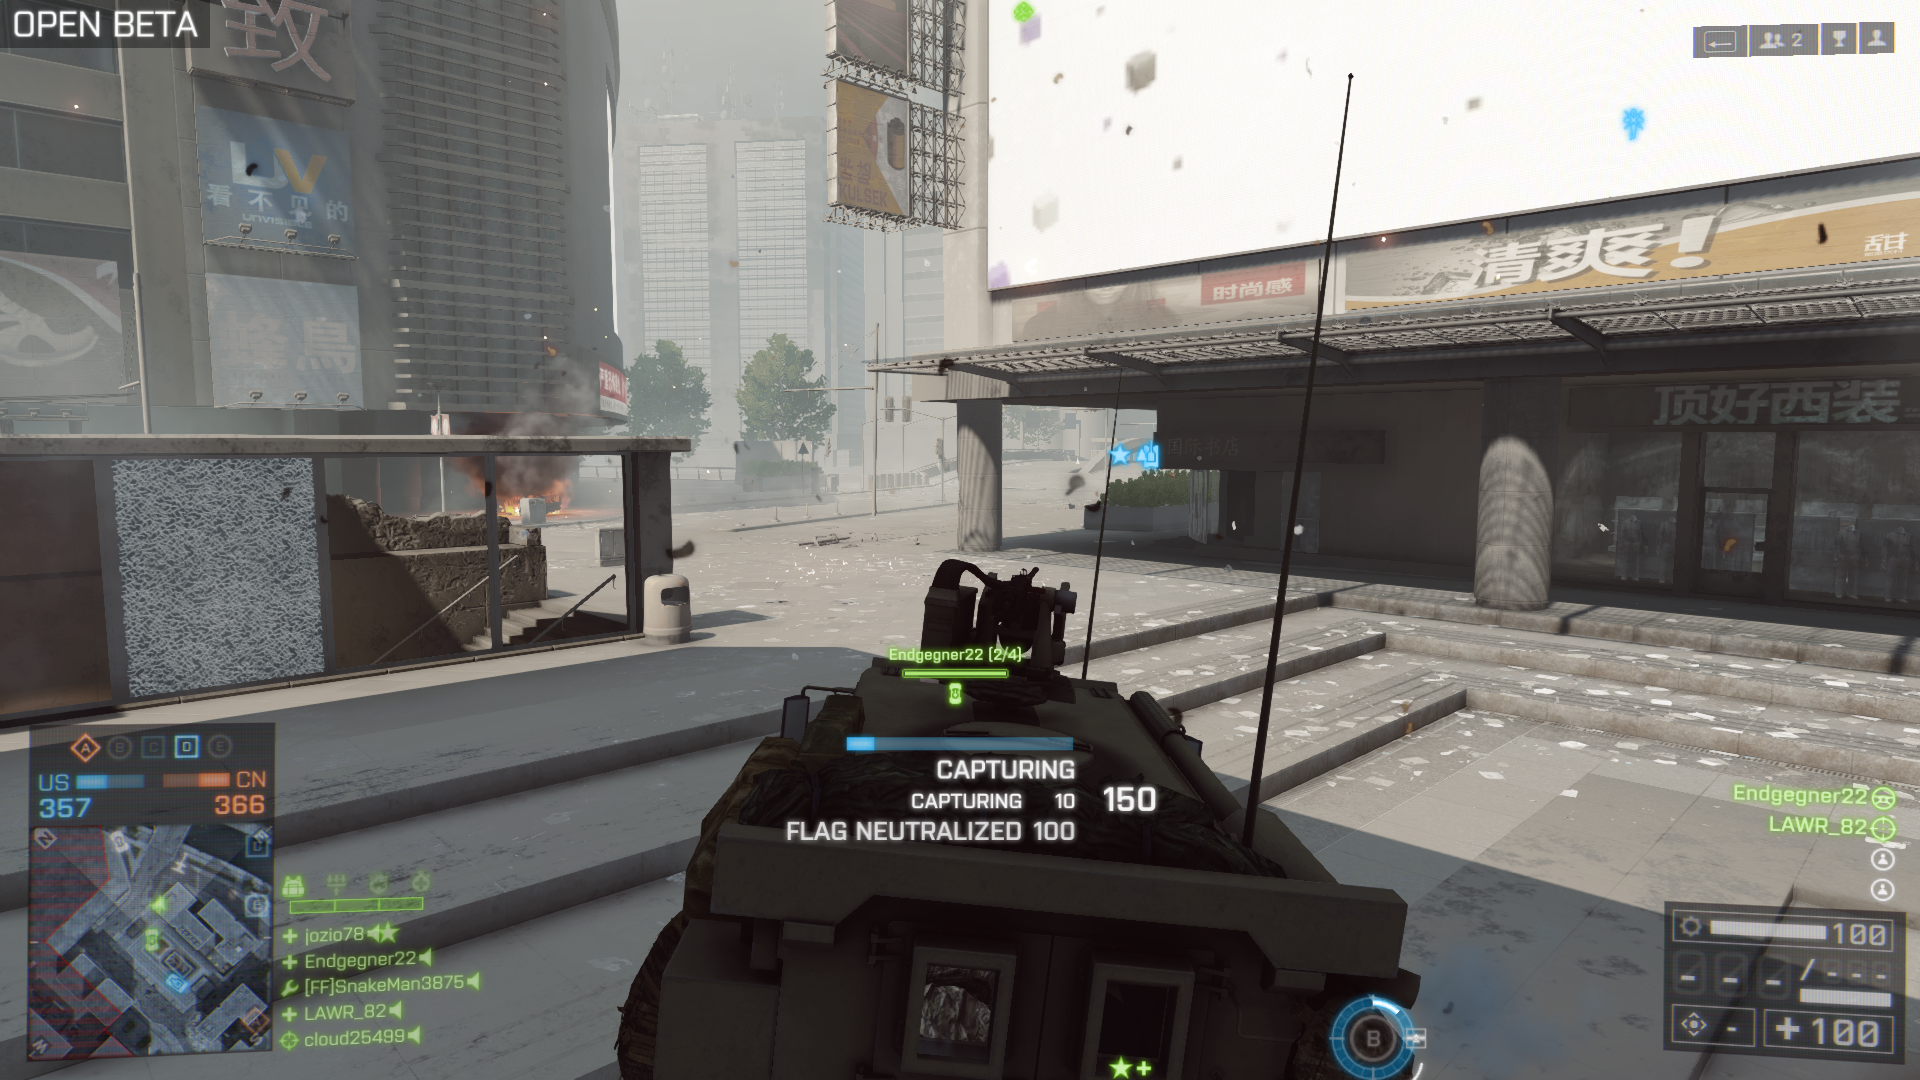 http://endgegner.fightercom.de/BF4_Screenshot/Battlefield4OpenBeta13.png